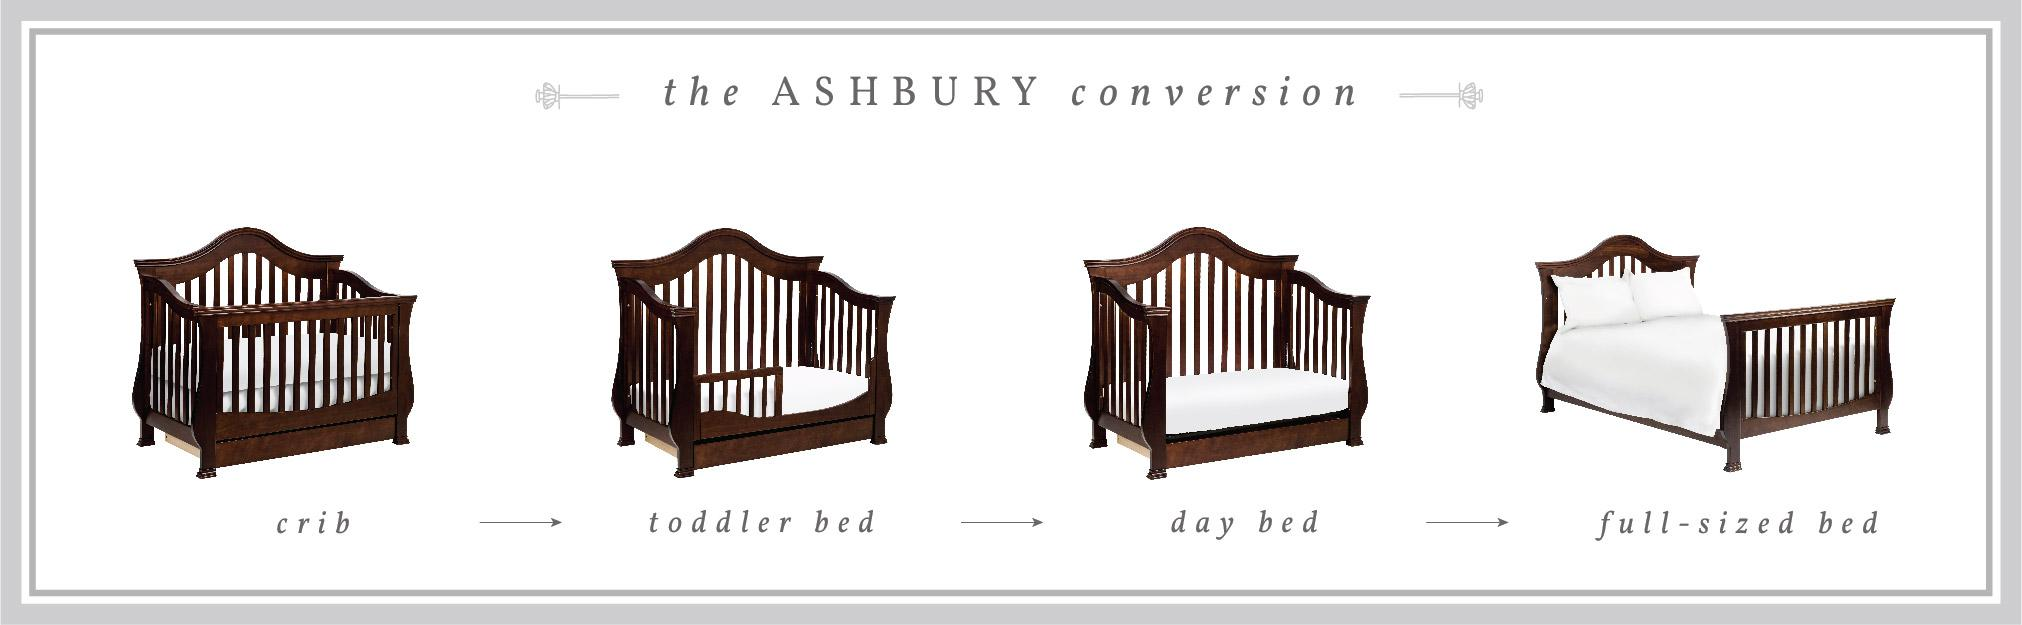 Amazon Com Million Dollar Baby Classic Ashbury 4 In 1 Convertible Crib With Toddler Bed